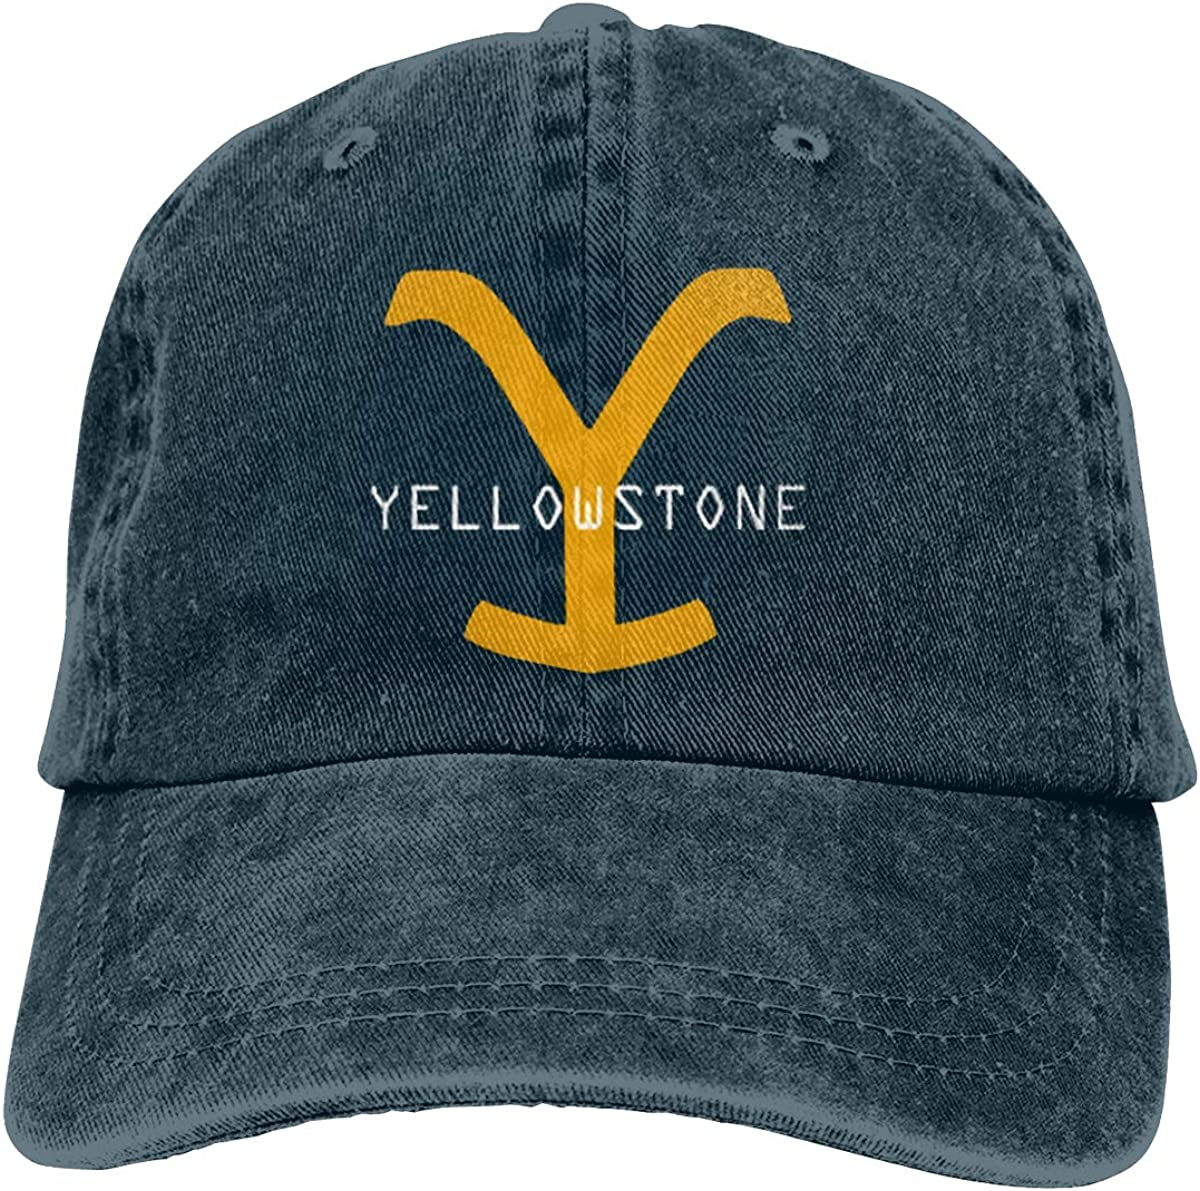 Yellowstone Dutton Ranch Vintage Hat Classic Washed 100/% Cotton Deep Heather Adjustable Cowboy hat for Men and Women